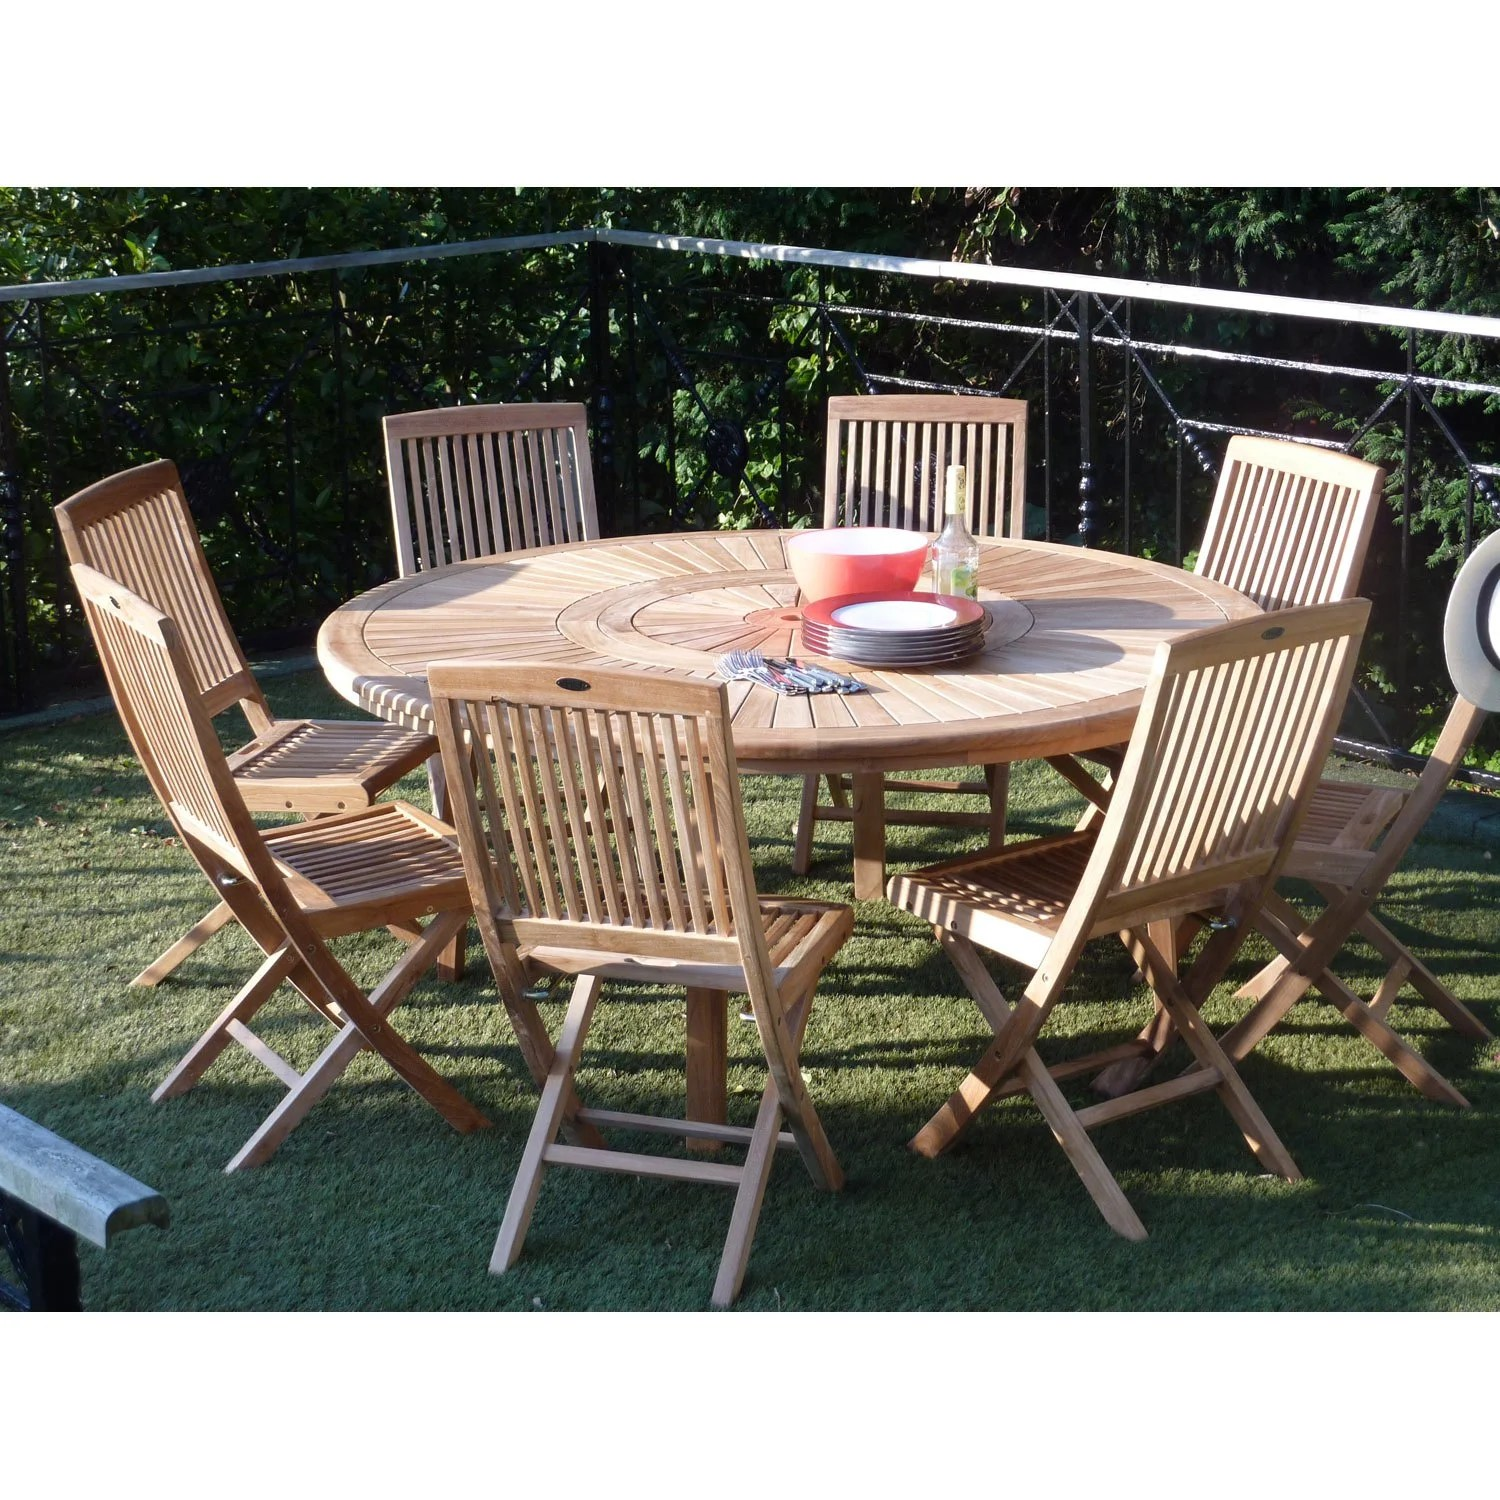 Table De Jardin Ronde Table De Jardin Orion Ronde Naturel 8 Personnes | Leroy Merlin